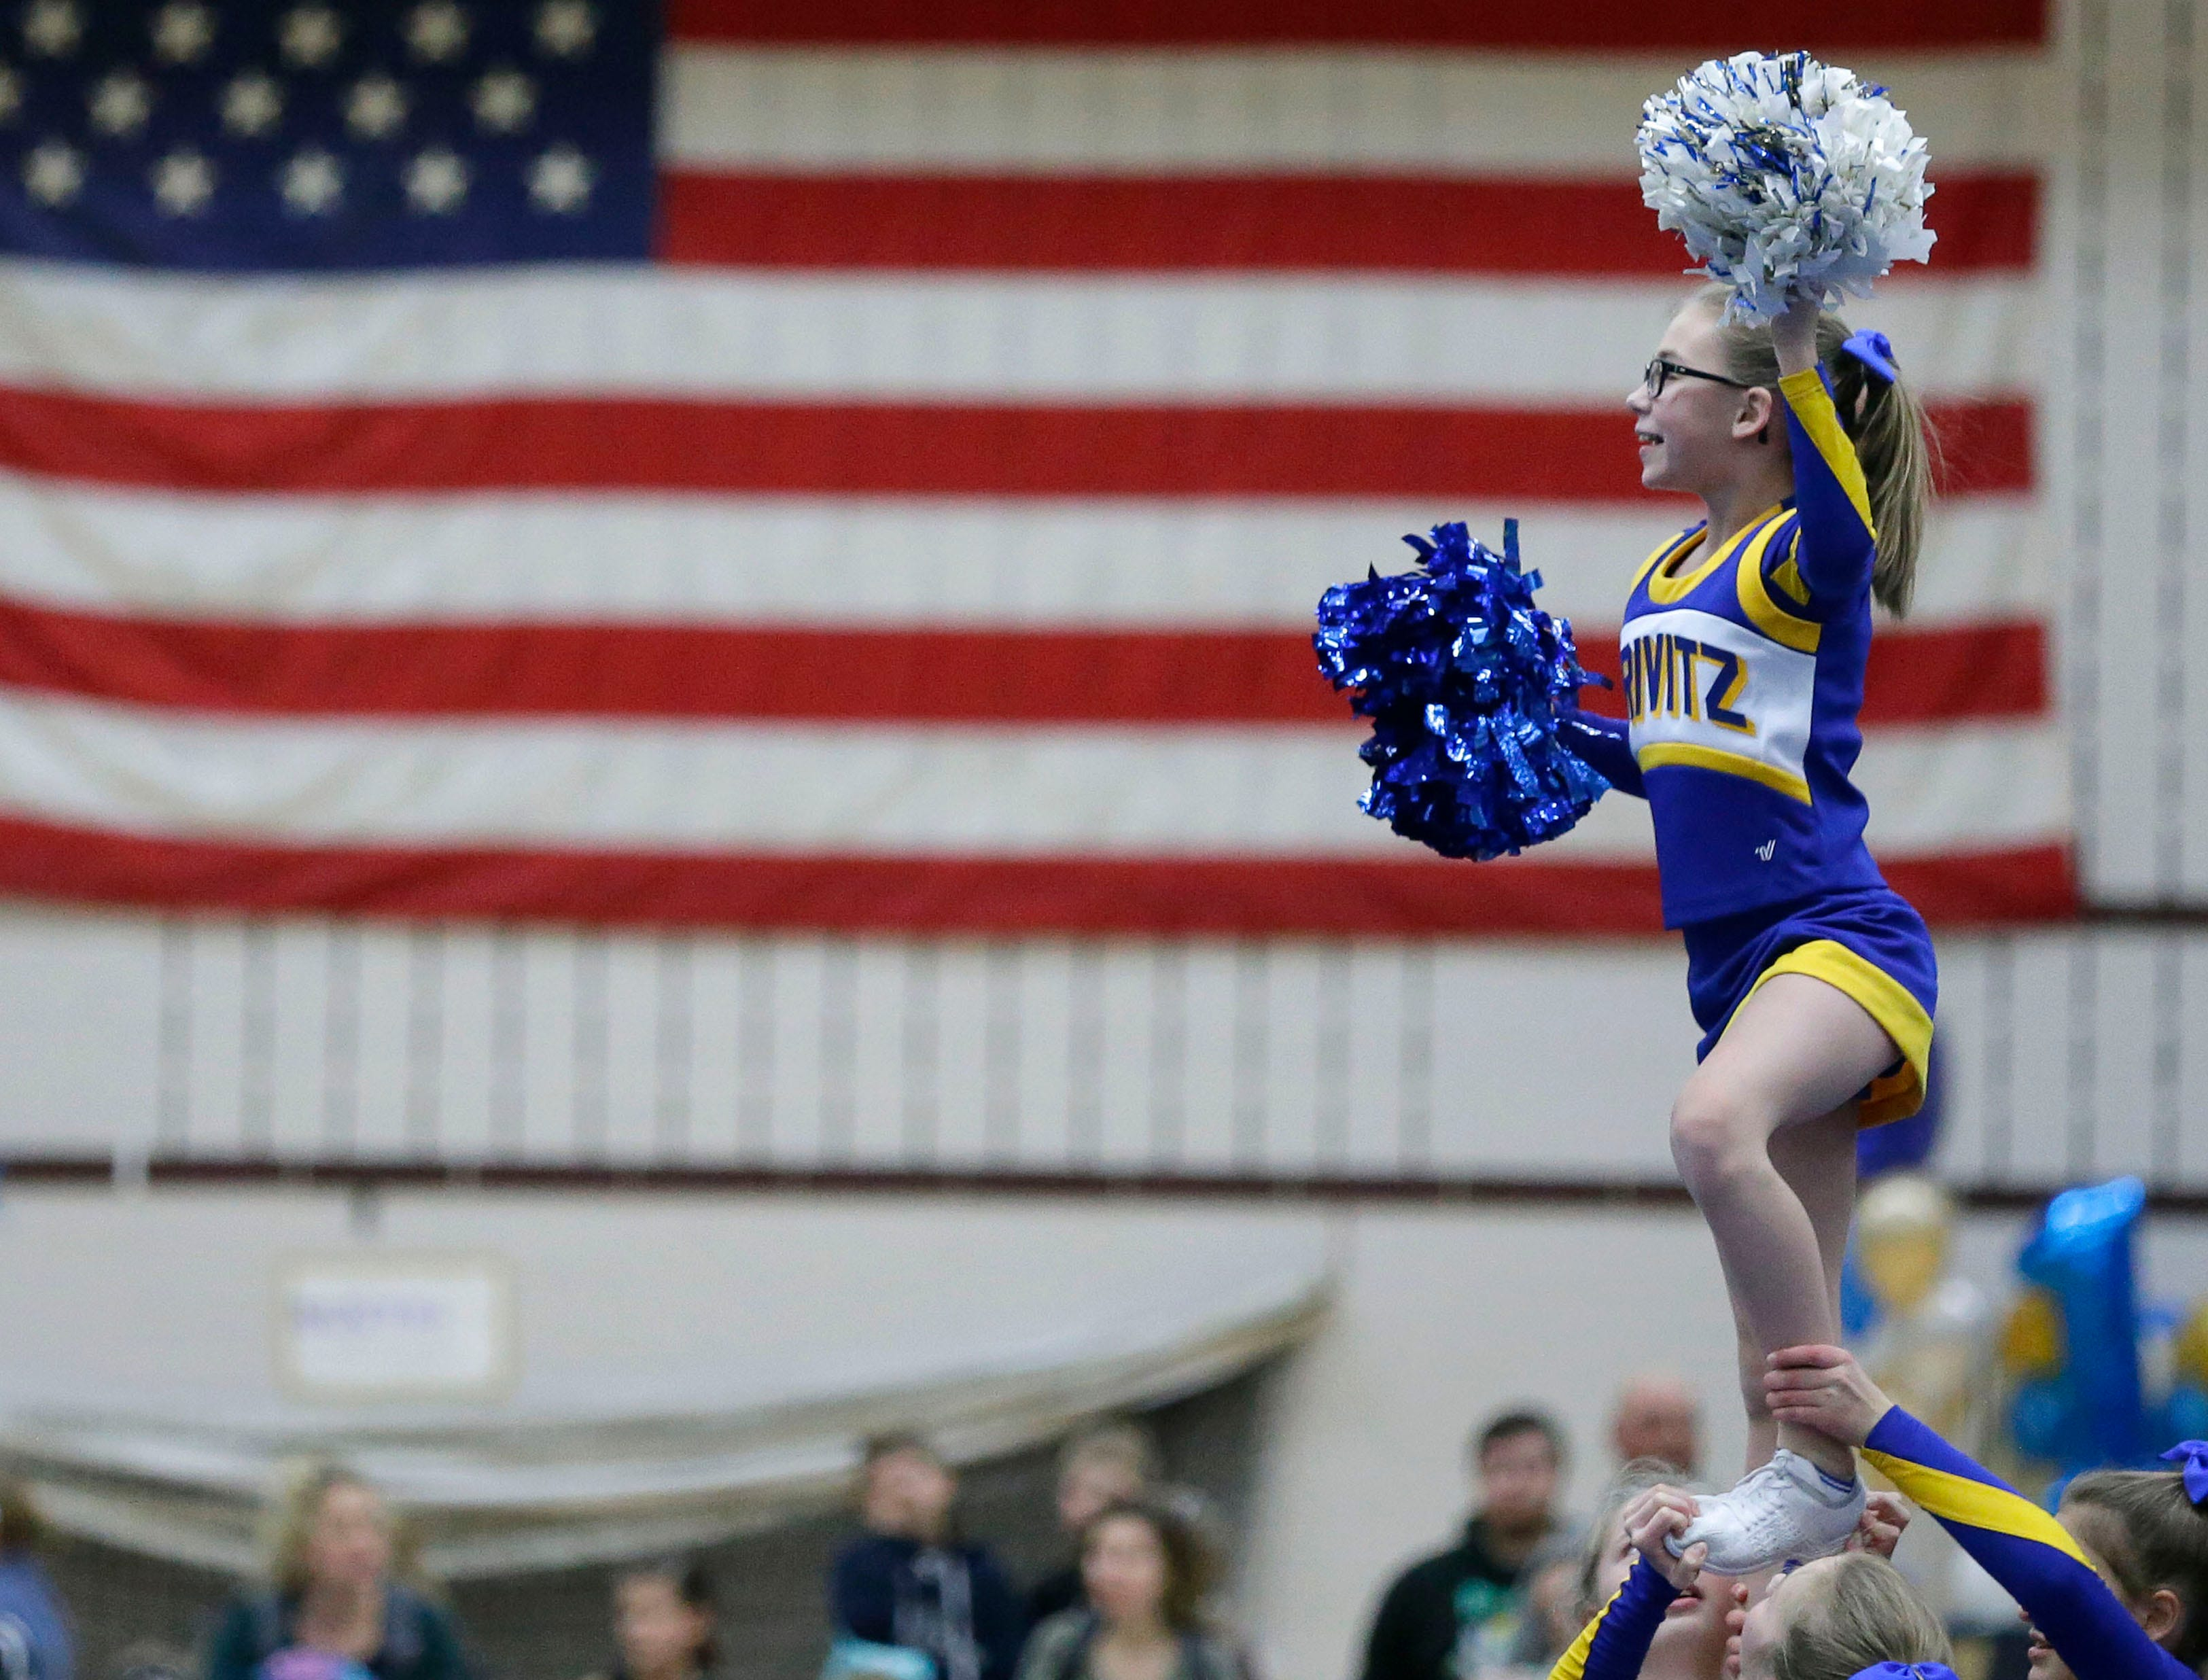 A Crivitiz team performs as the Lightning Bolt Explosion Cheer and Dance competition takes place Saturday, January 5, 2019, at Appleton North High School in Appleton, Wis.